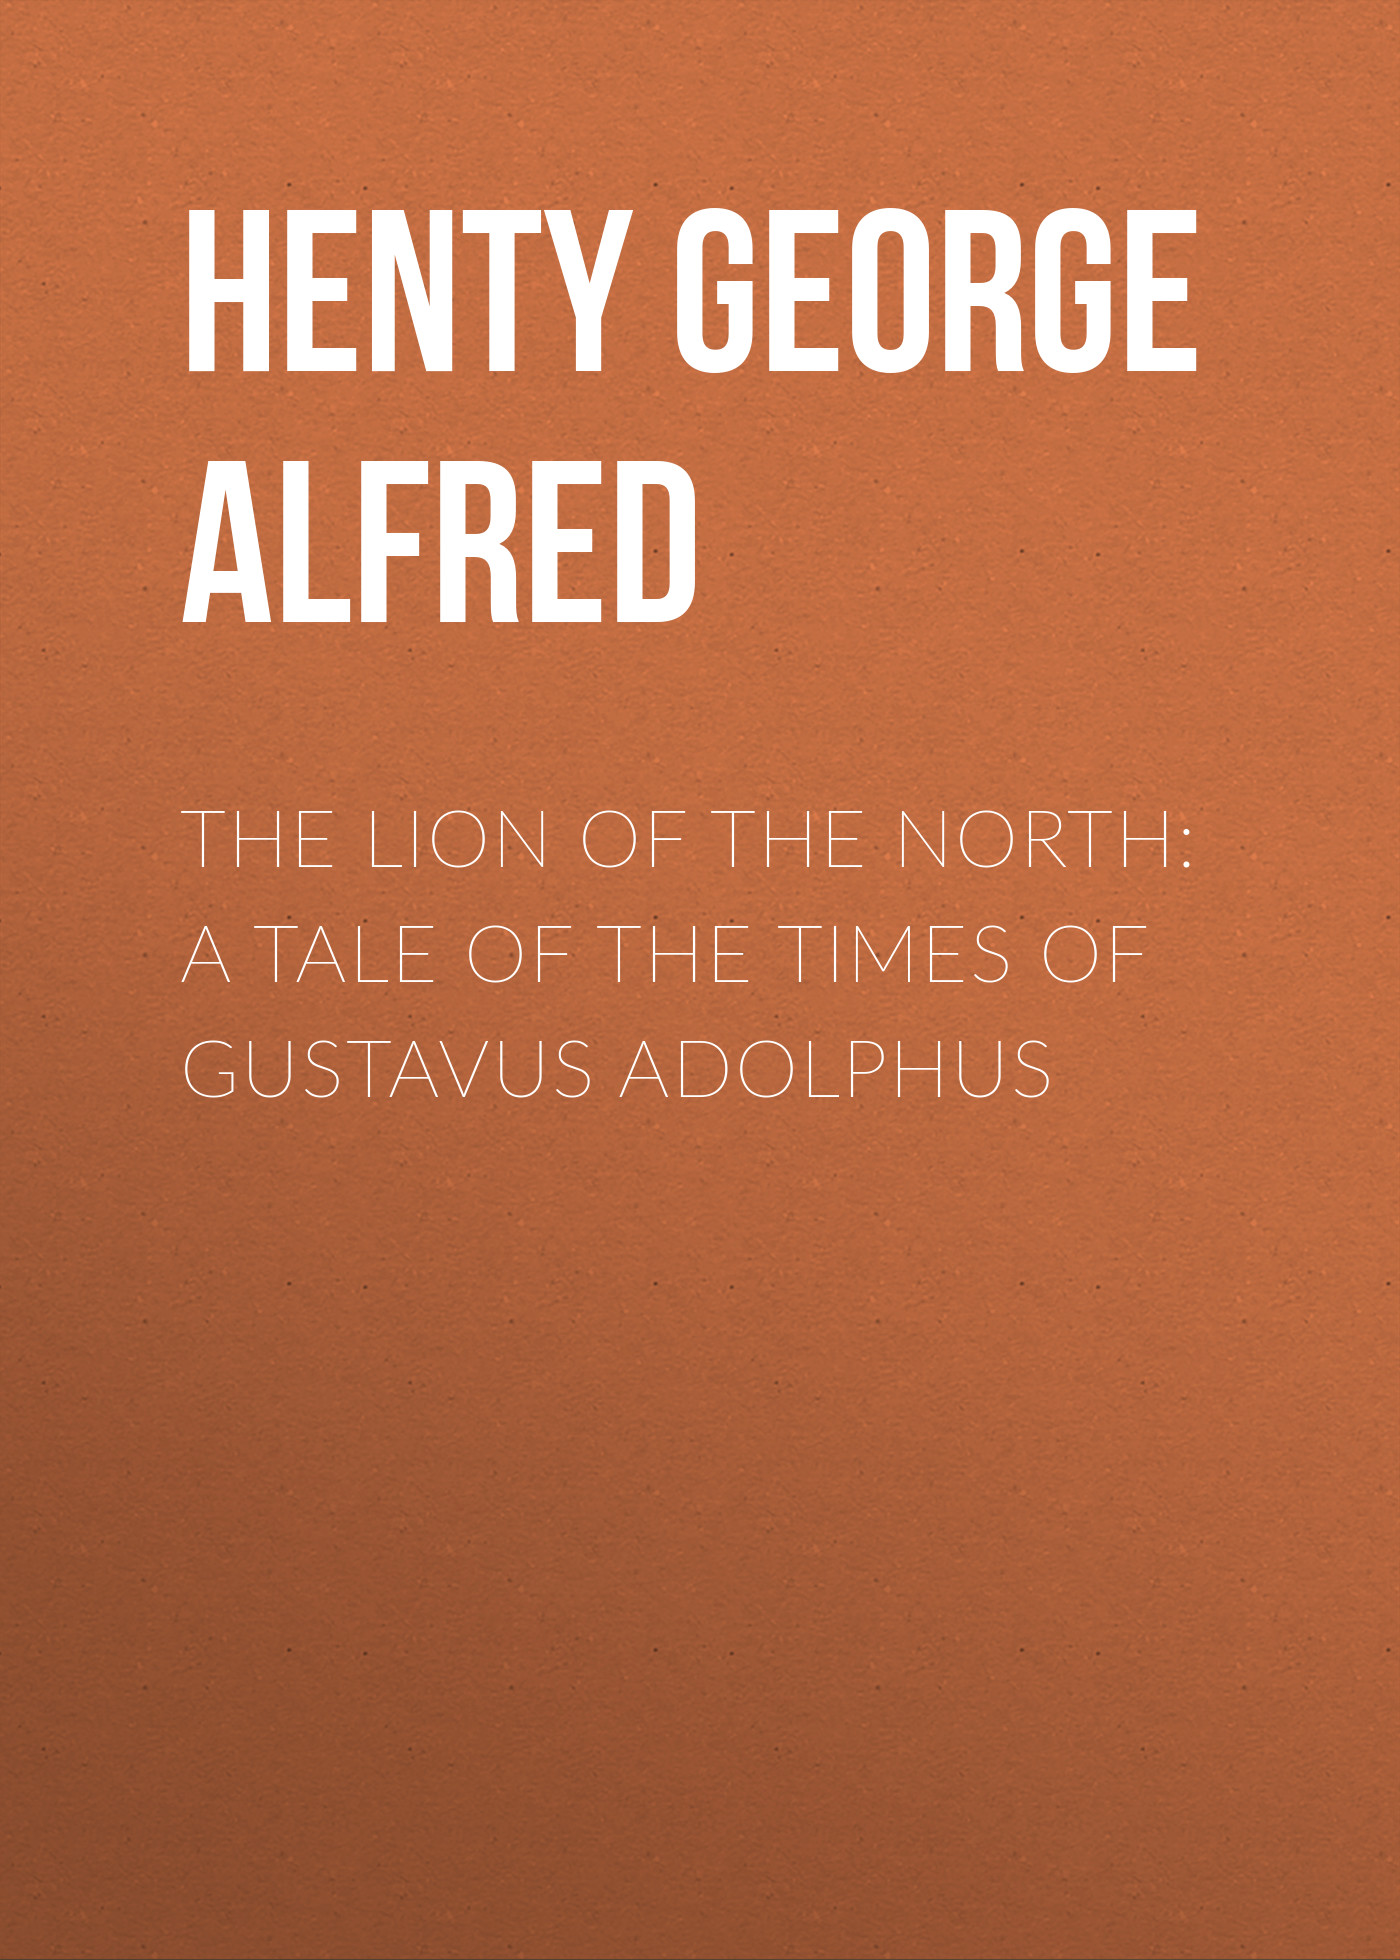 Henty George Alfred The Lion of the North: A Tale of the Times of Gustavus Adolphus north carolina constitutional convention journal of the convention of the state of north carolina 1 2